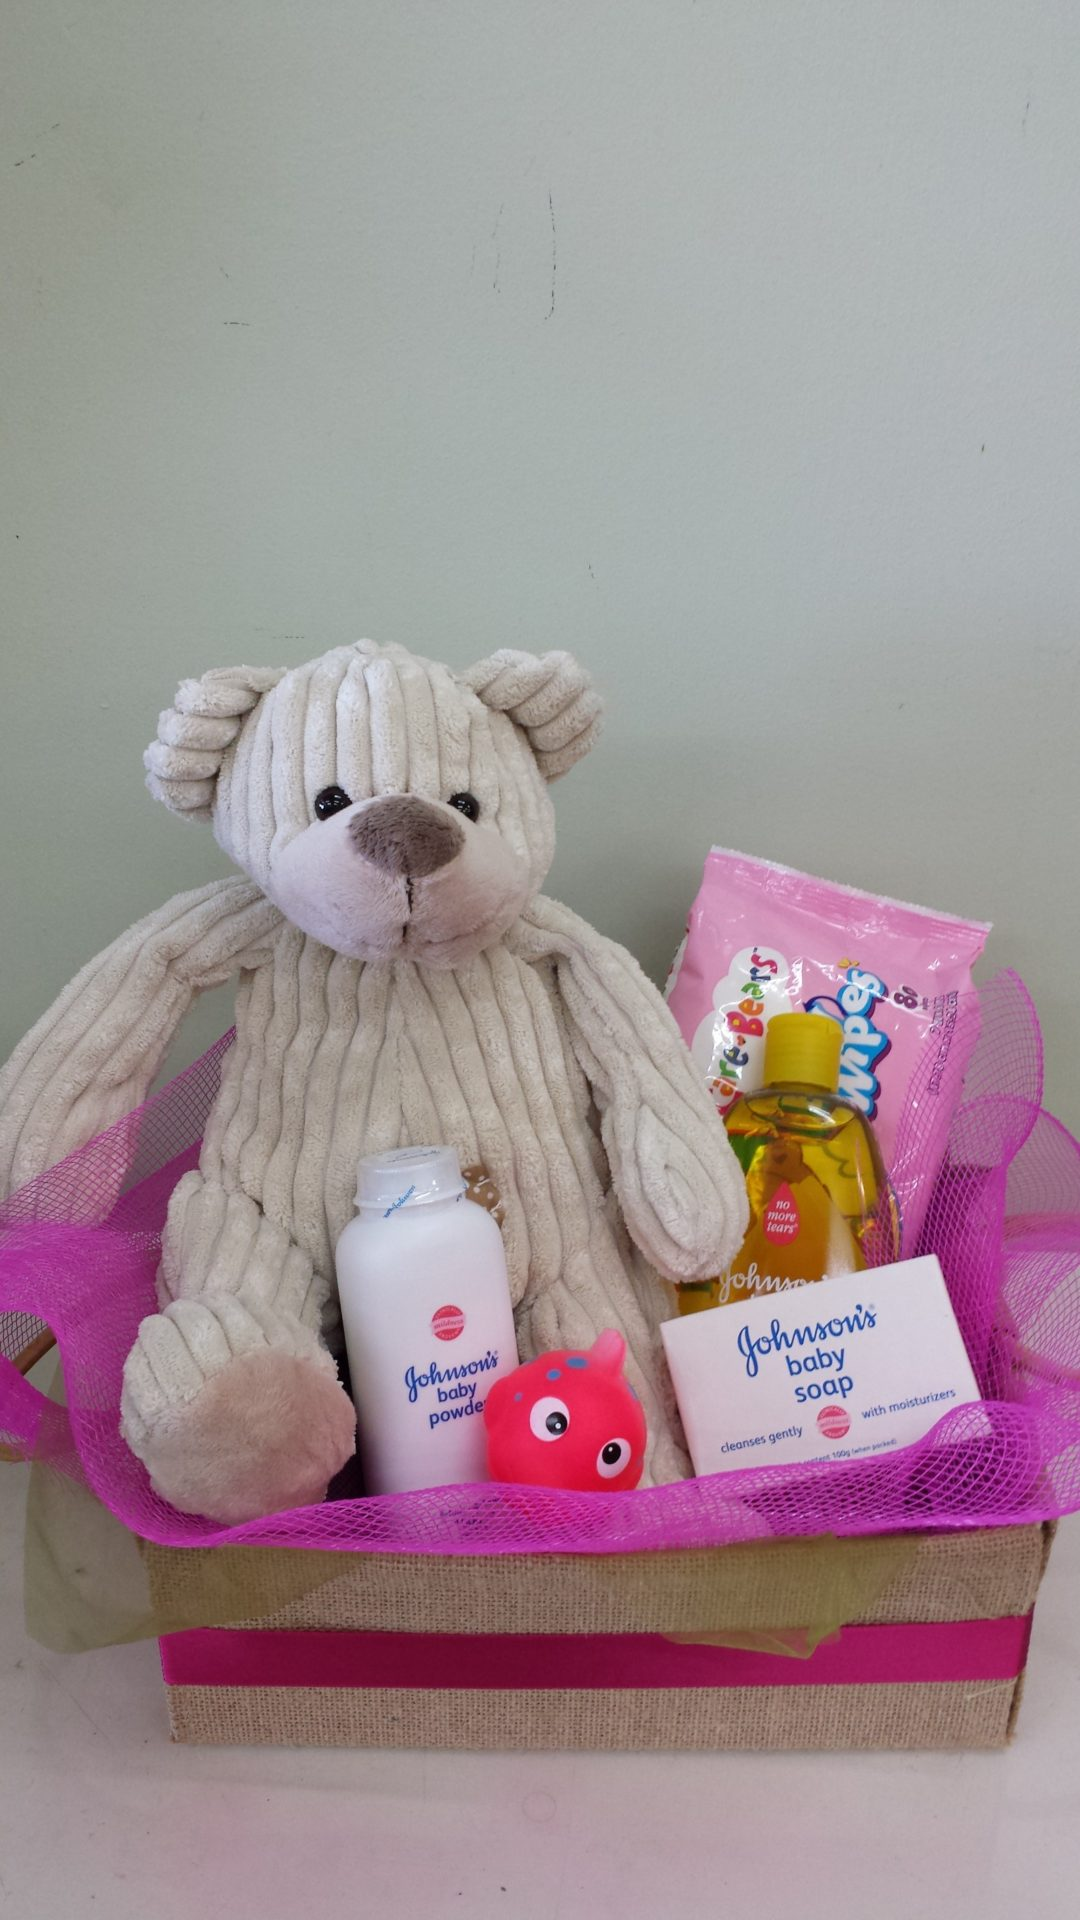 Baby care products and teddy bear